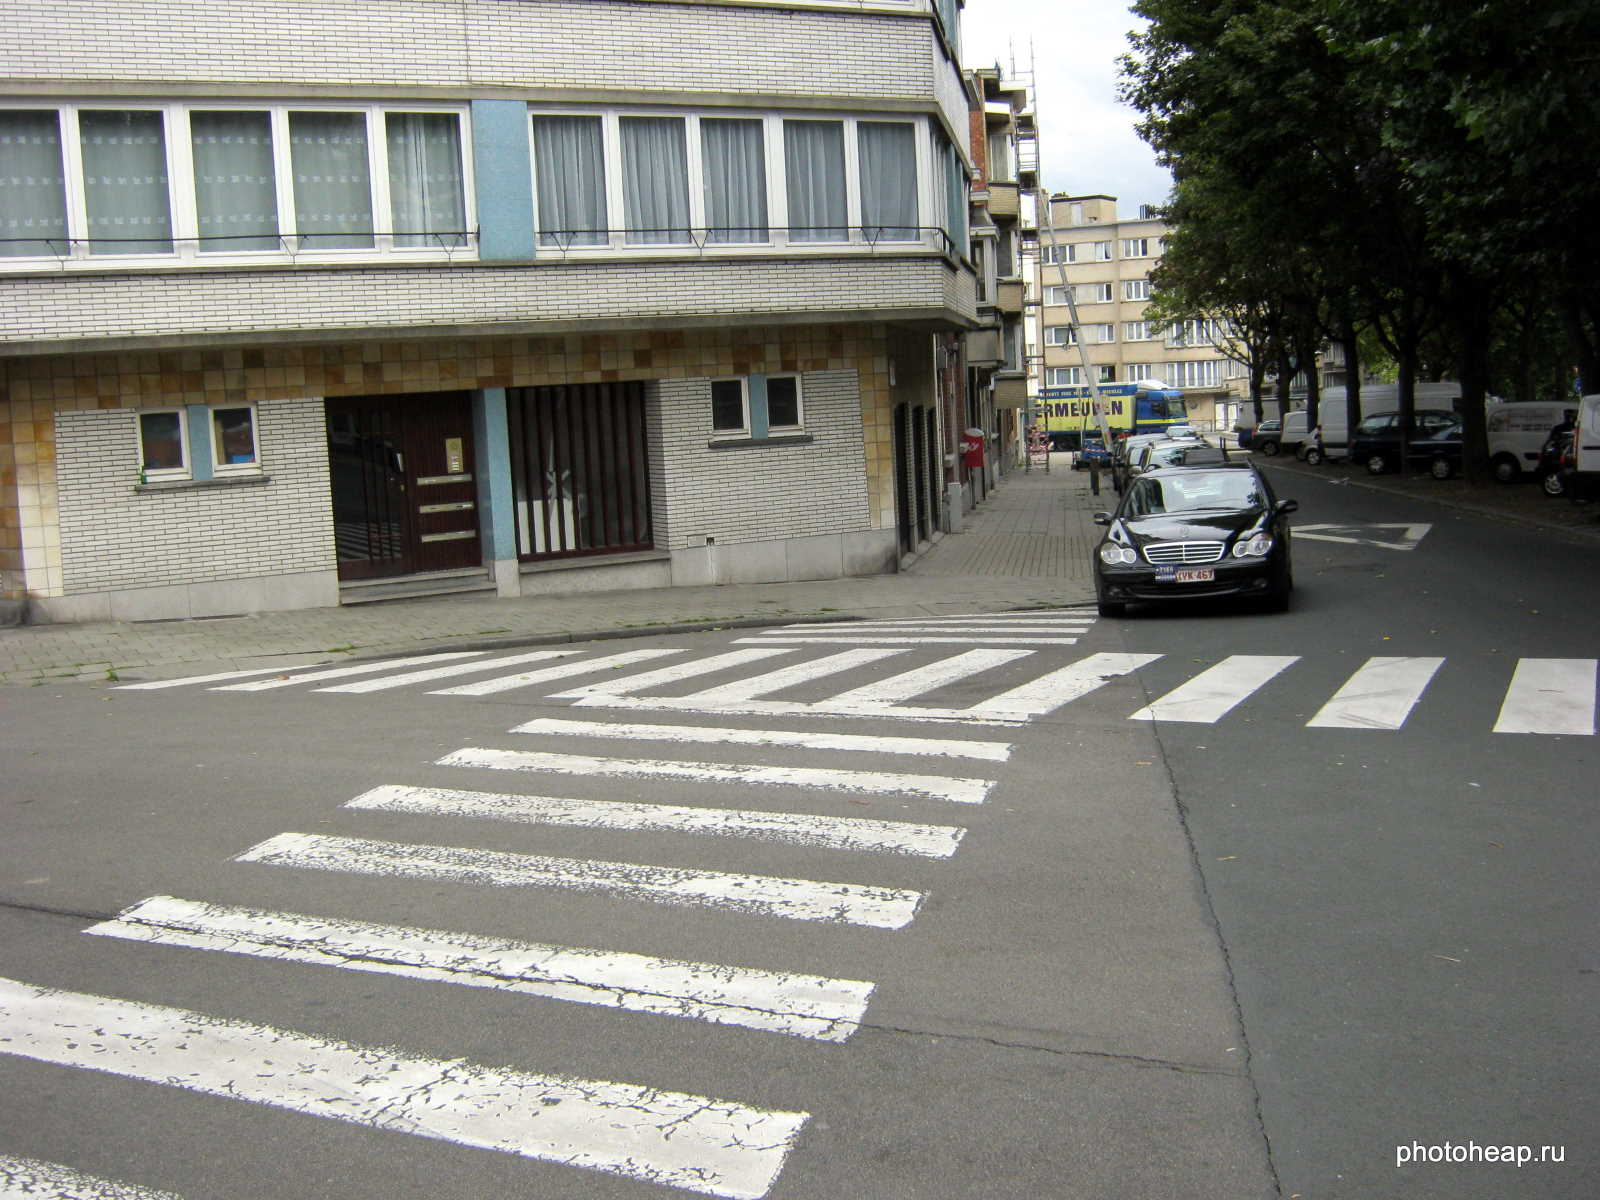 Brussels - Zebra crossing